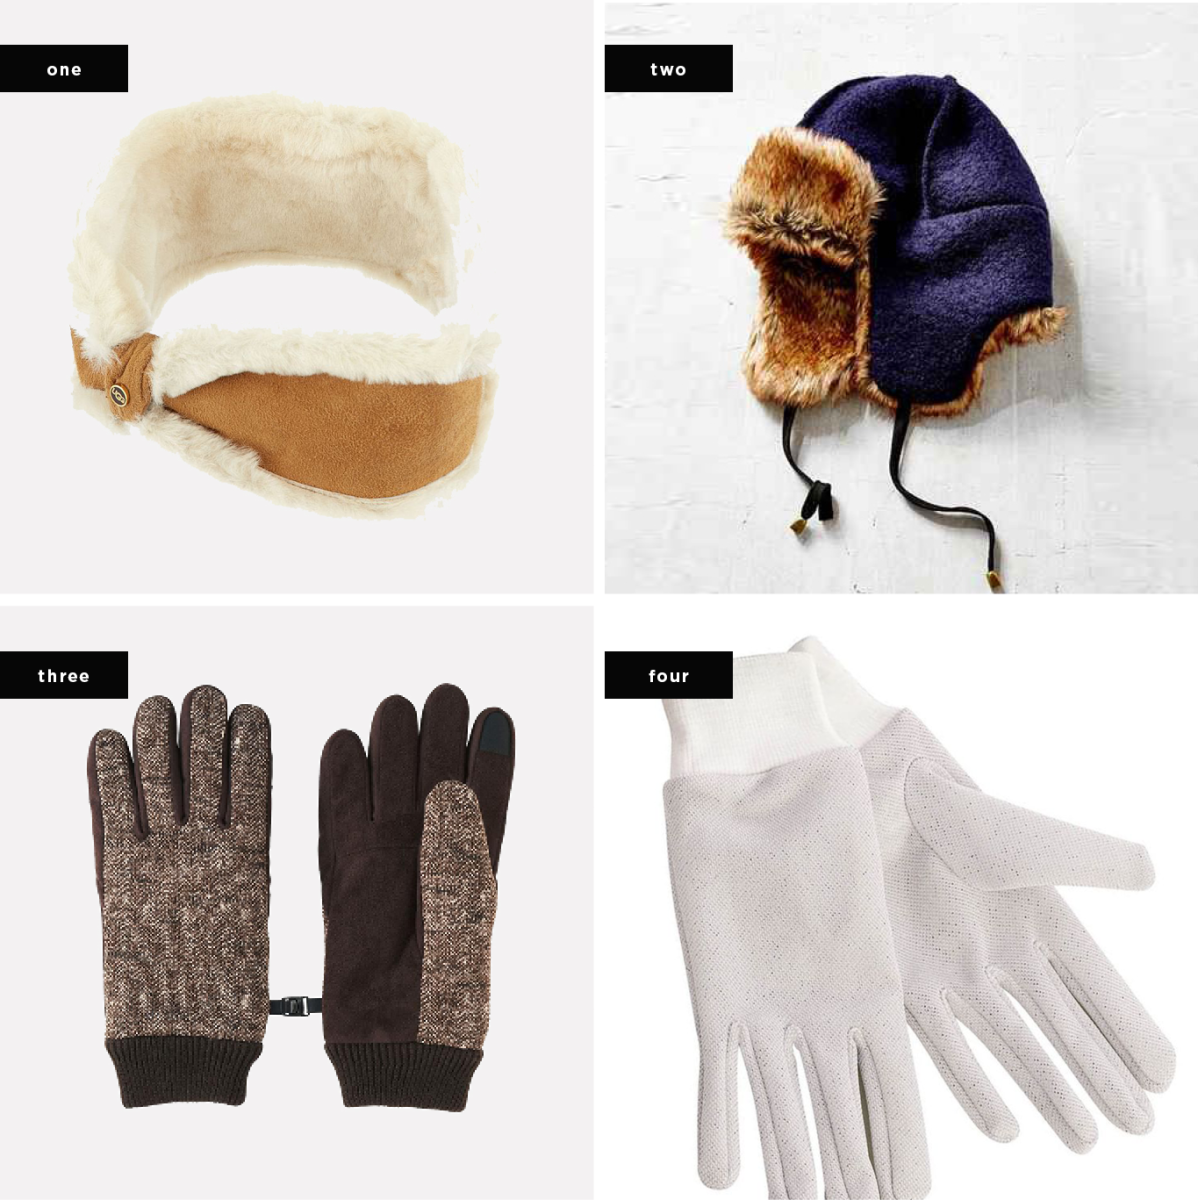 1. UGG, $95 / 2. Urban Outfitters, $44 / 3. Uniqlo, $10 (similar) / 4. Carol Wright Gifts, $4